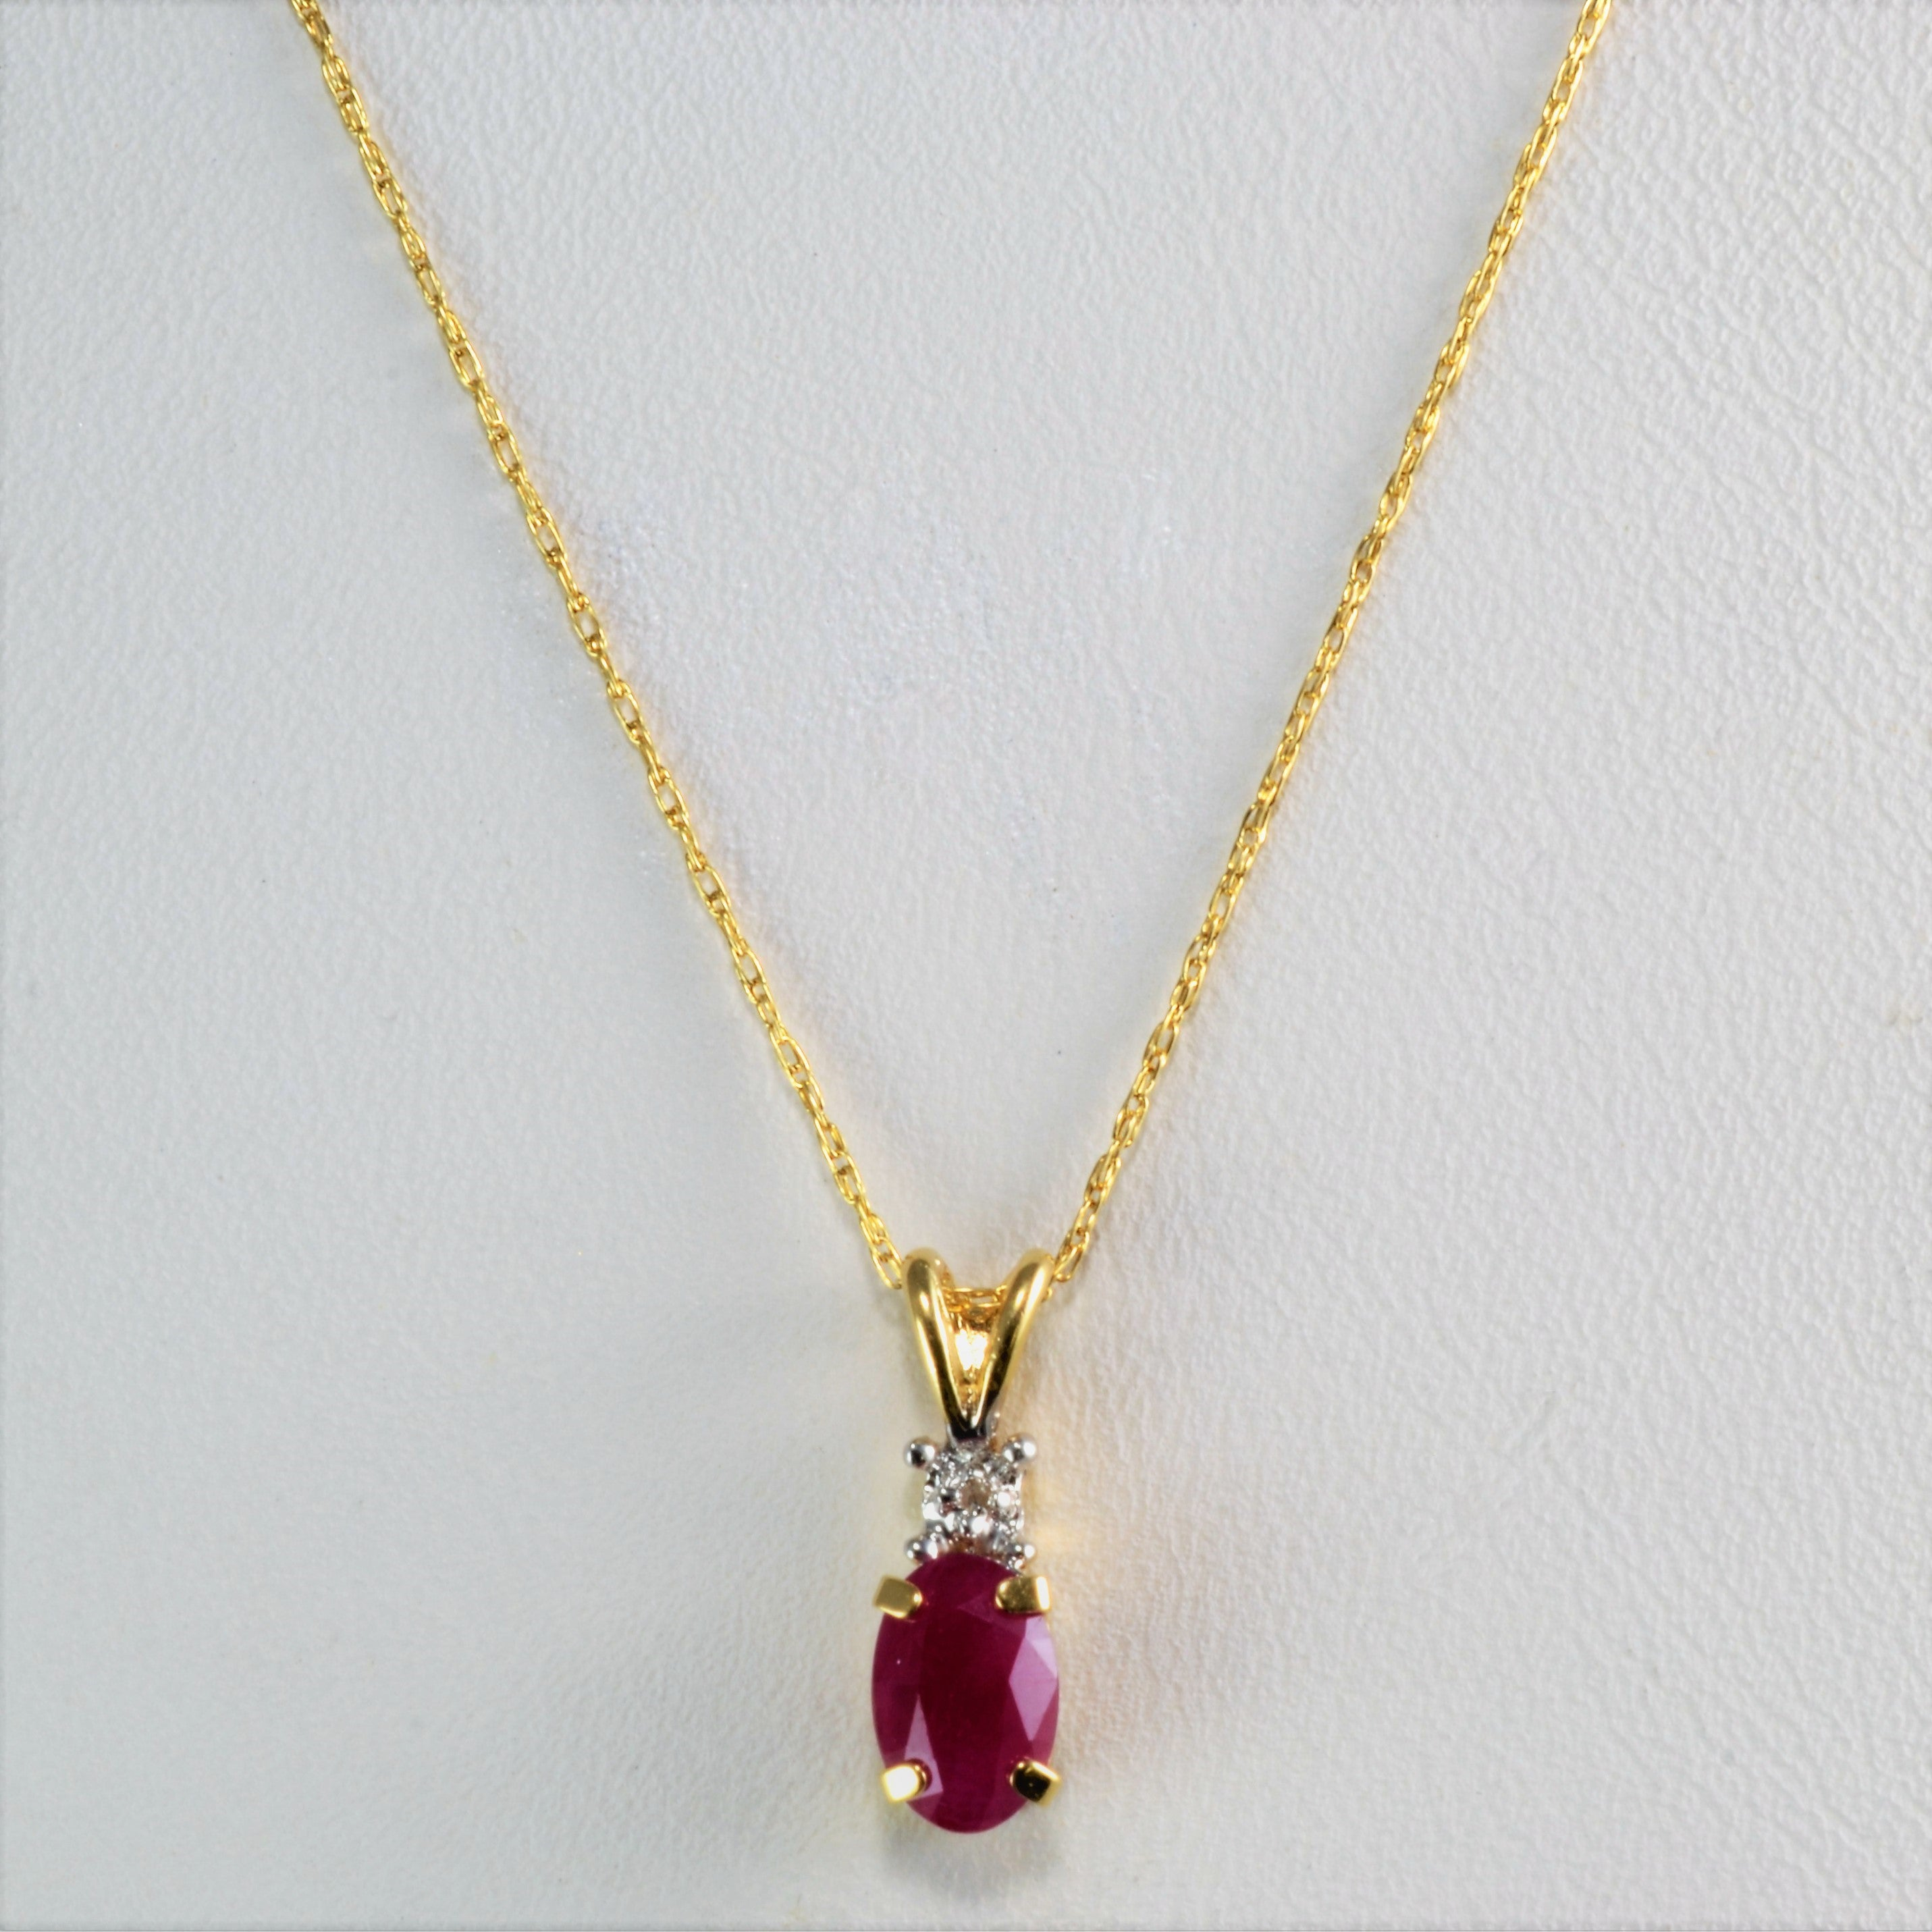 Oval ruby diamond drop pendant necklace 18 100 ways oval ruby diamond drop pendant necklace 18 aloadofball Choice Image